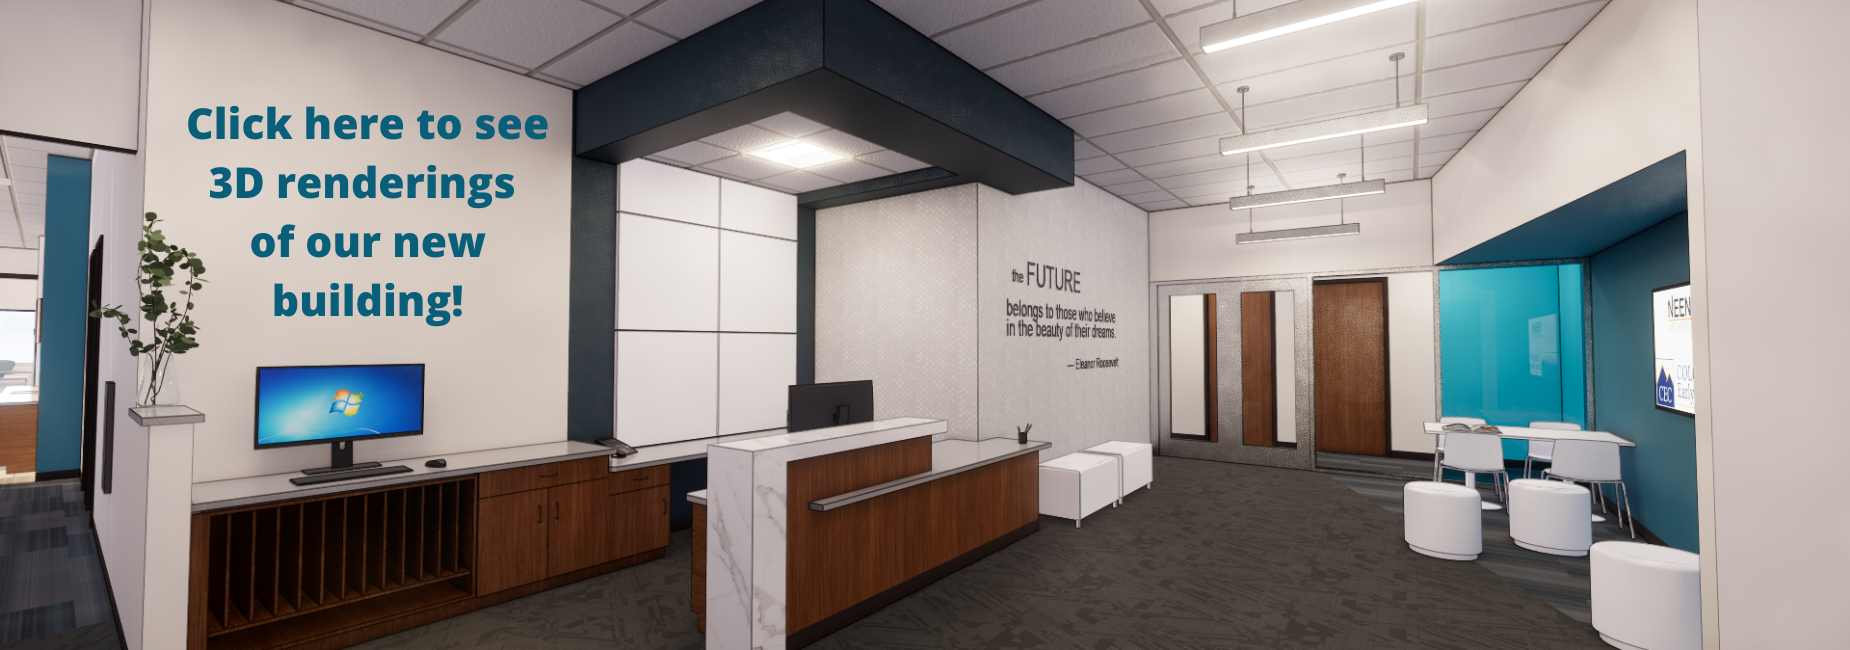 3D renderings of CEC Inverness